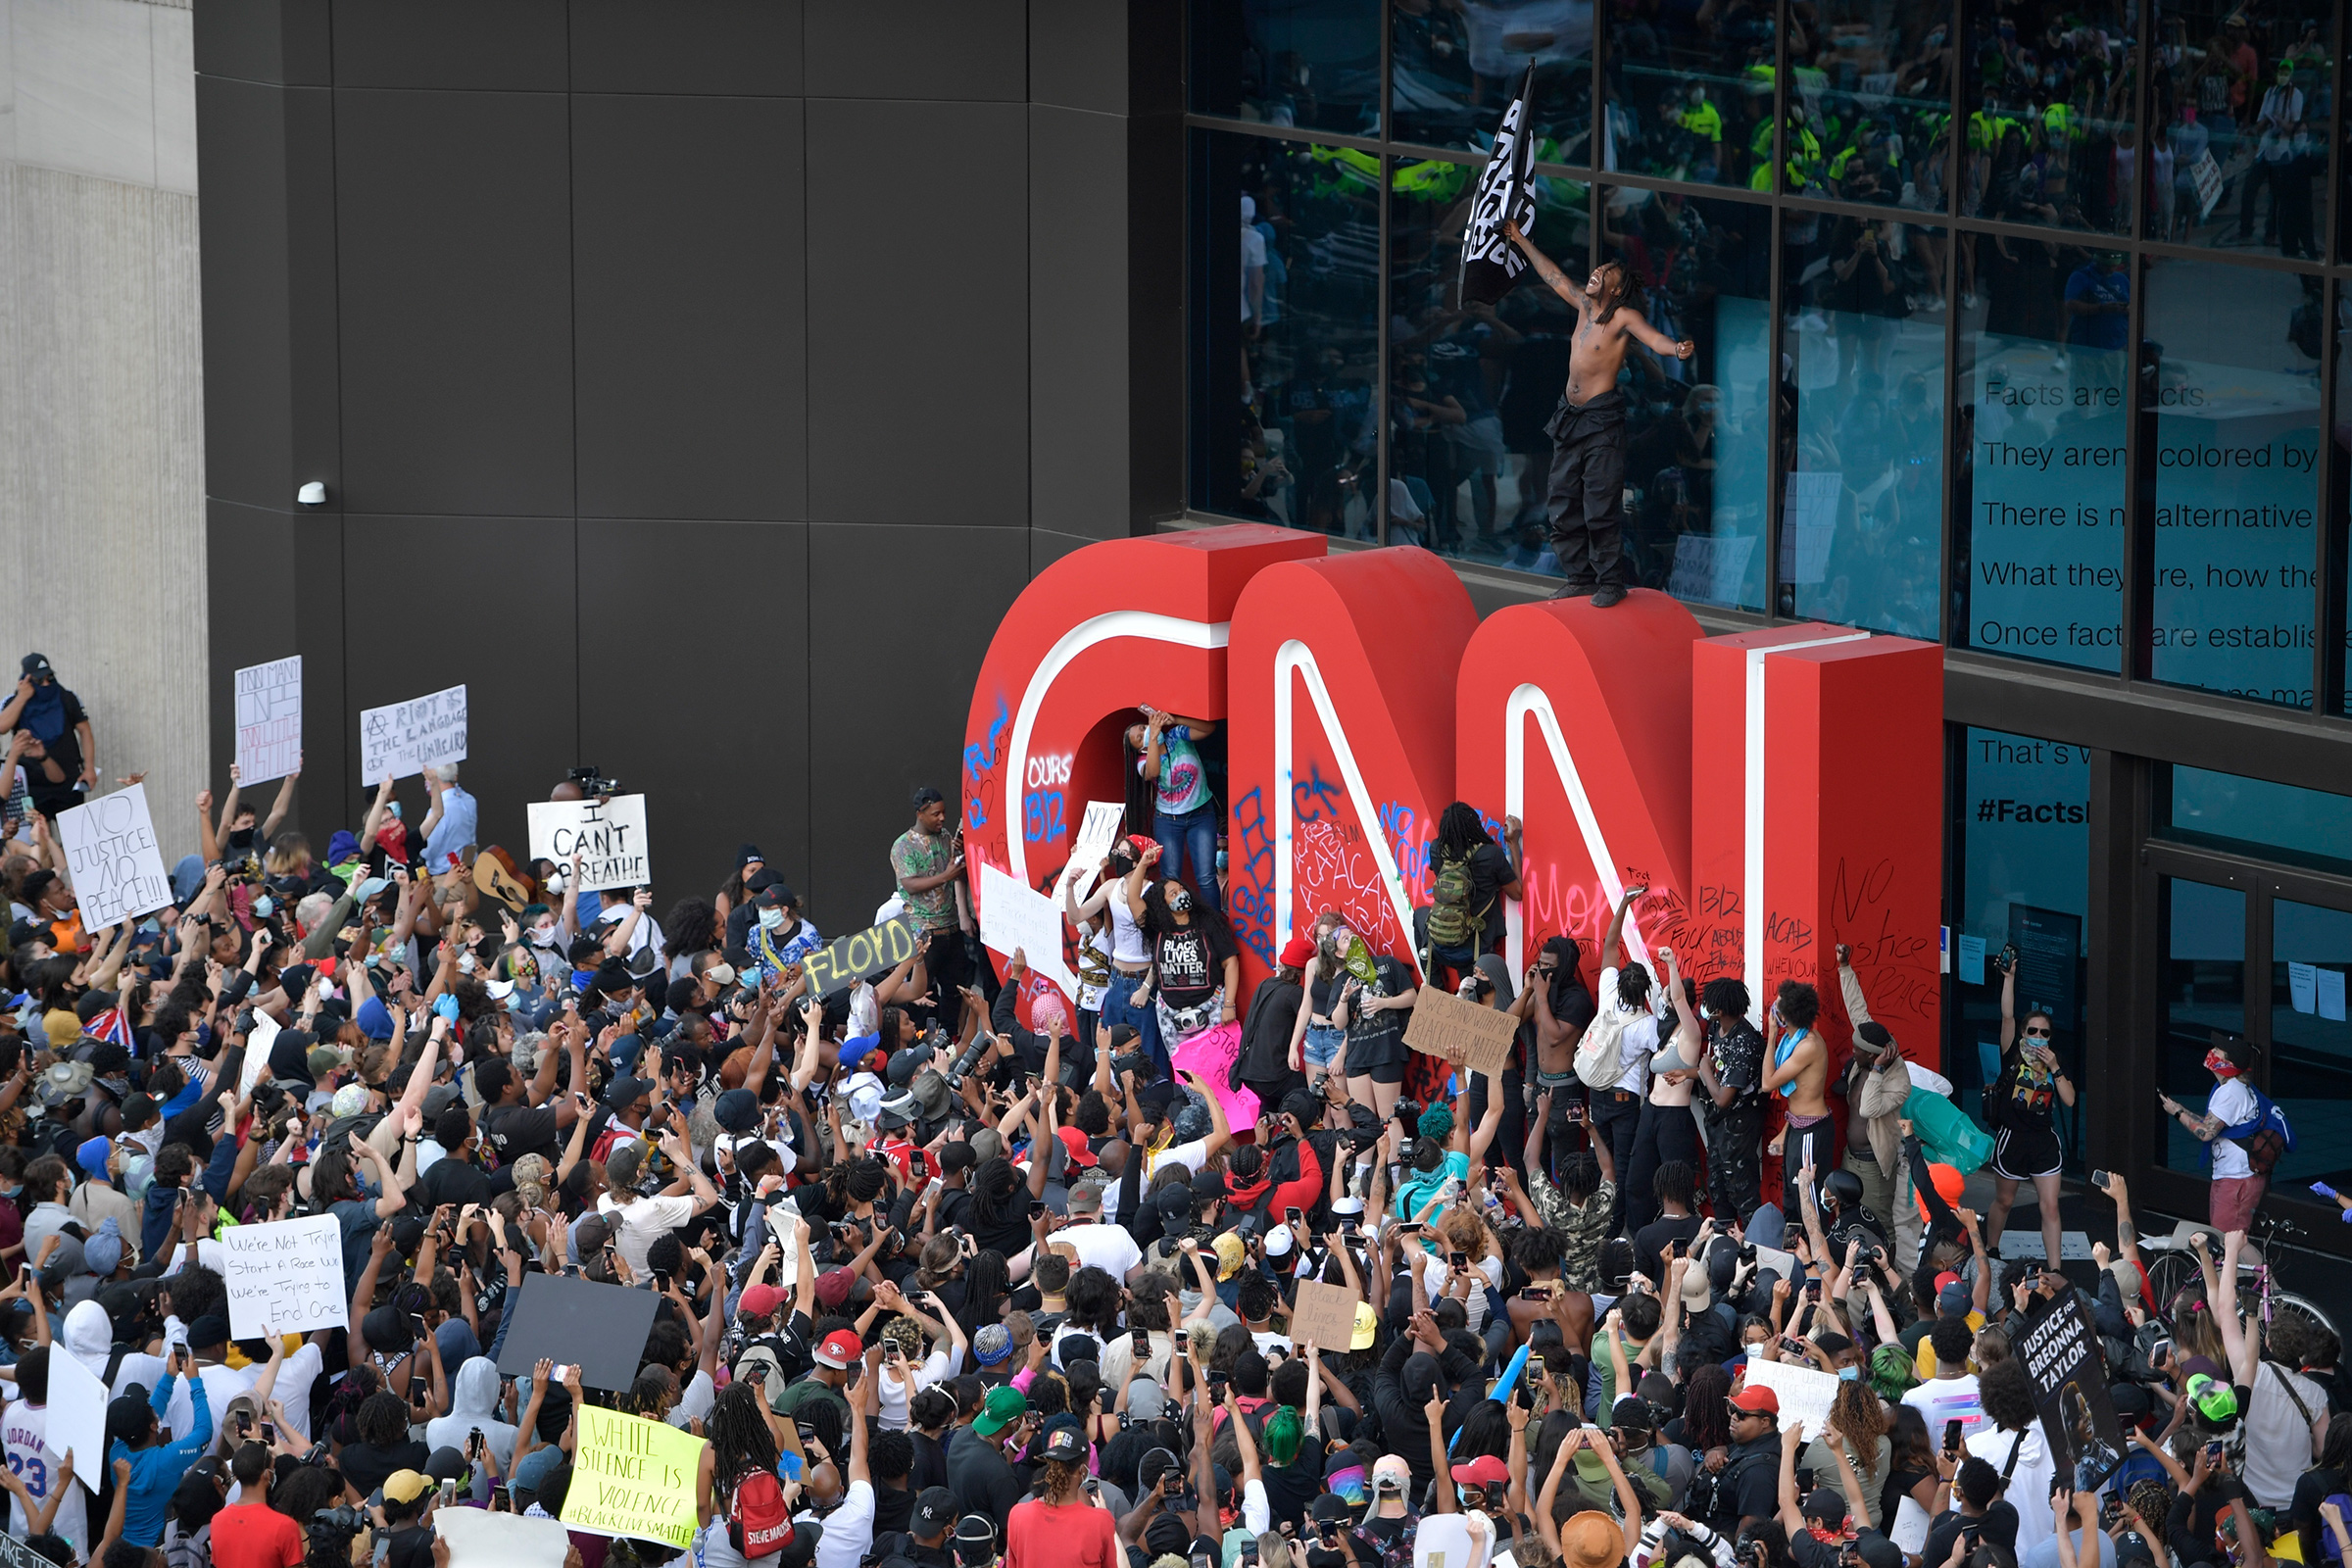 Demonstrators paint on the CNN logo during a protest march in Atlanta, Ga., May 29, 2020. The protest started peacefully earlier in the day before demonstrators clashed with police.